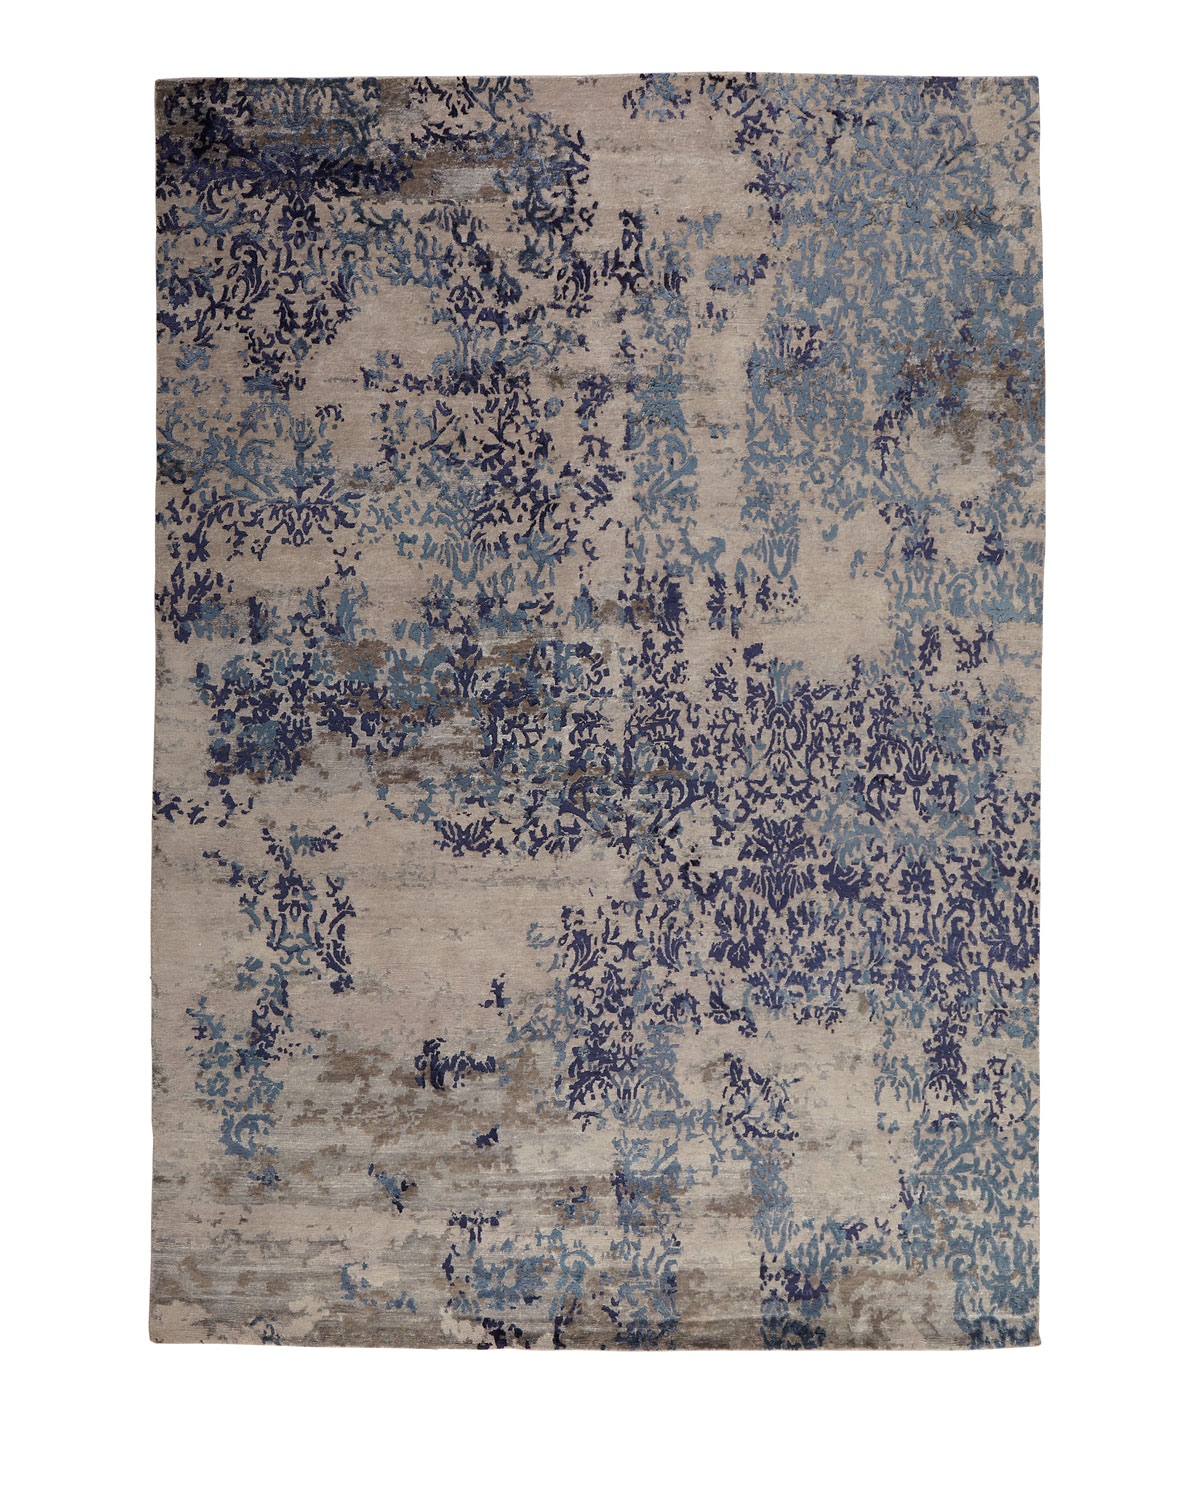 Majorelle Rug, 3' x 5' Product Image